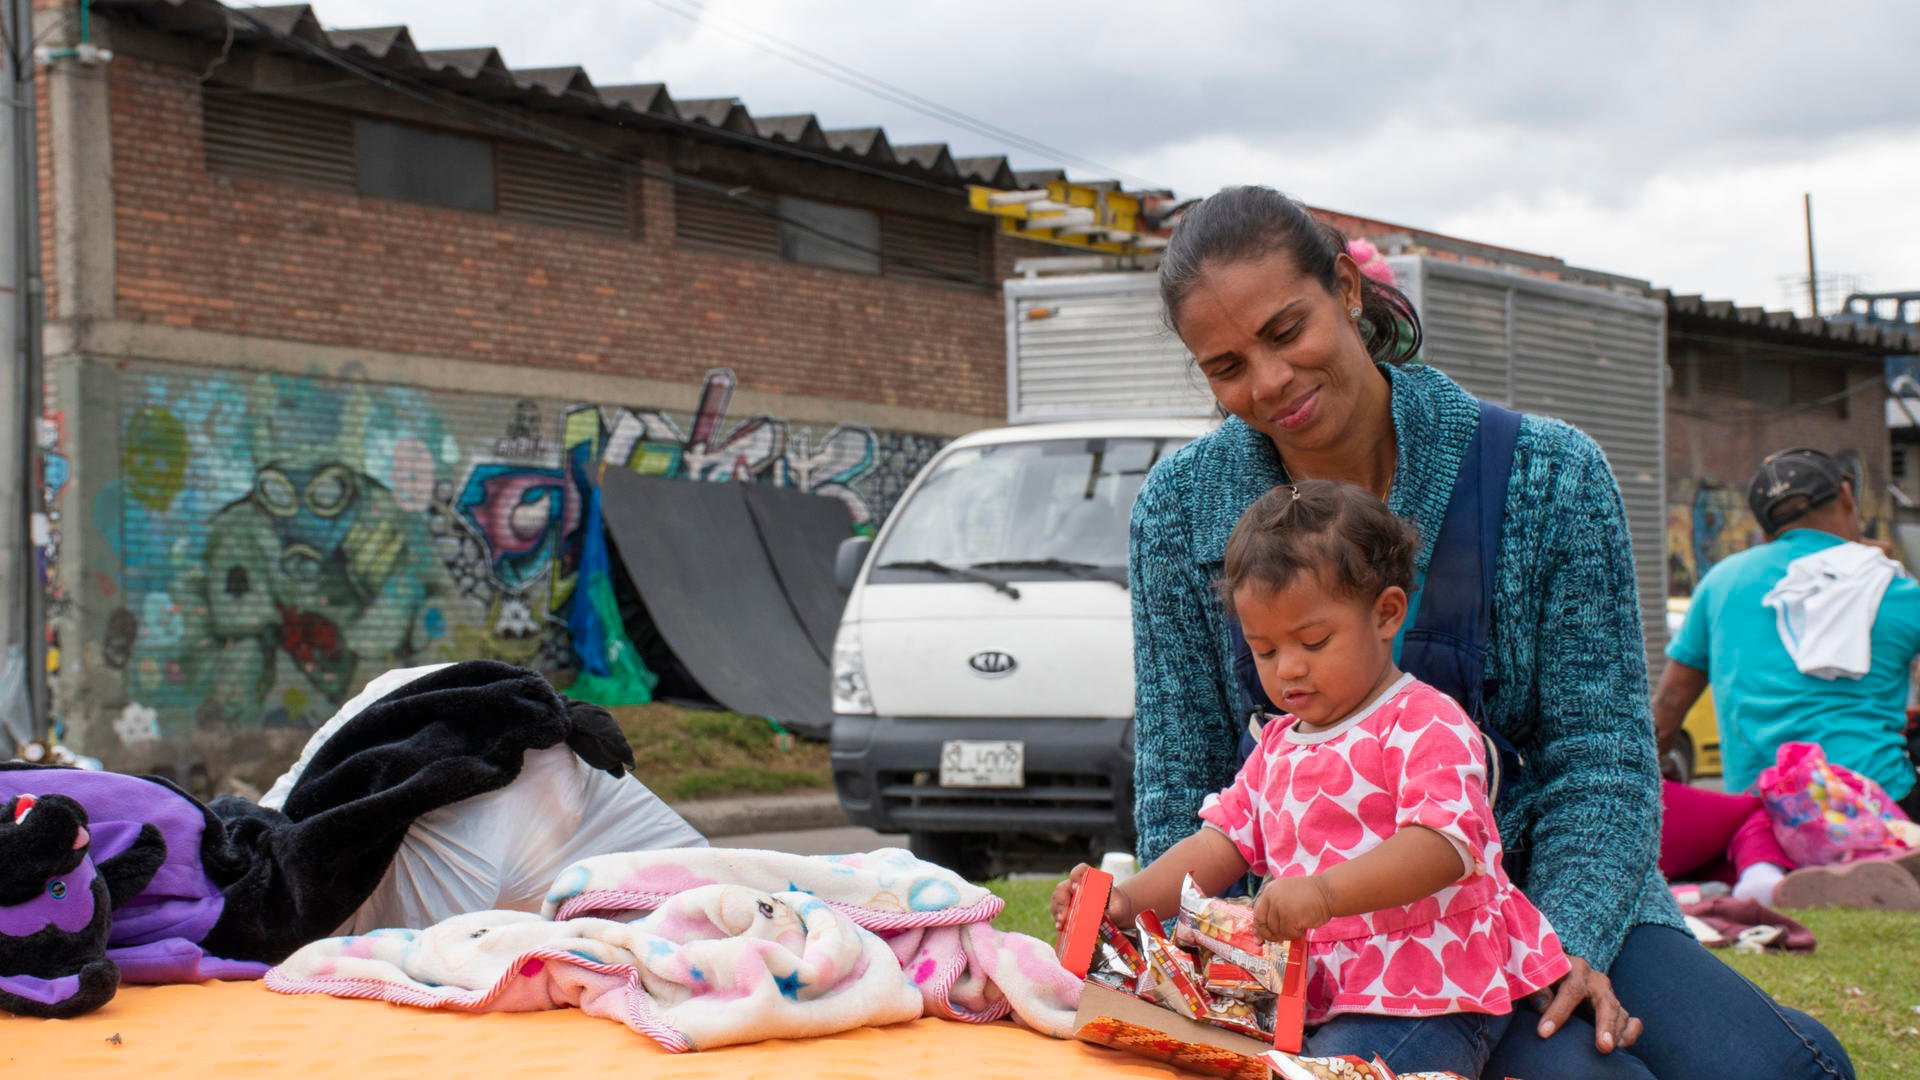 Carina plays with her daughter Kimberly in her lap, camped alongside other Venezuelan refugees